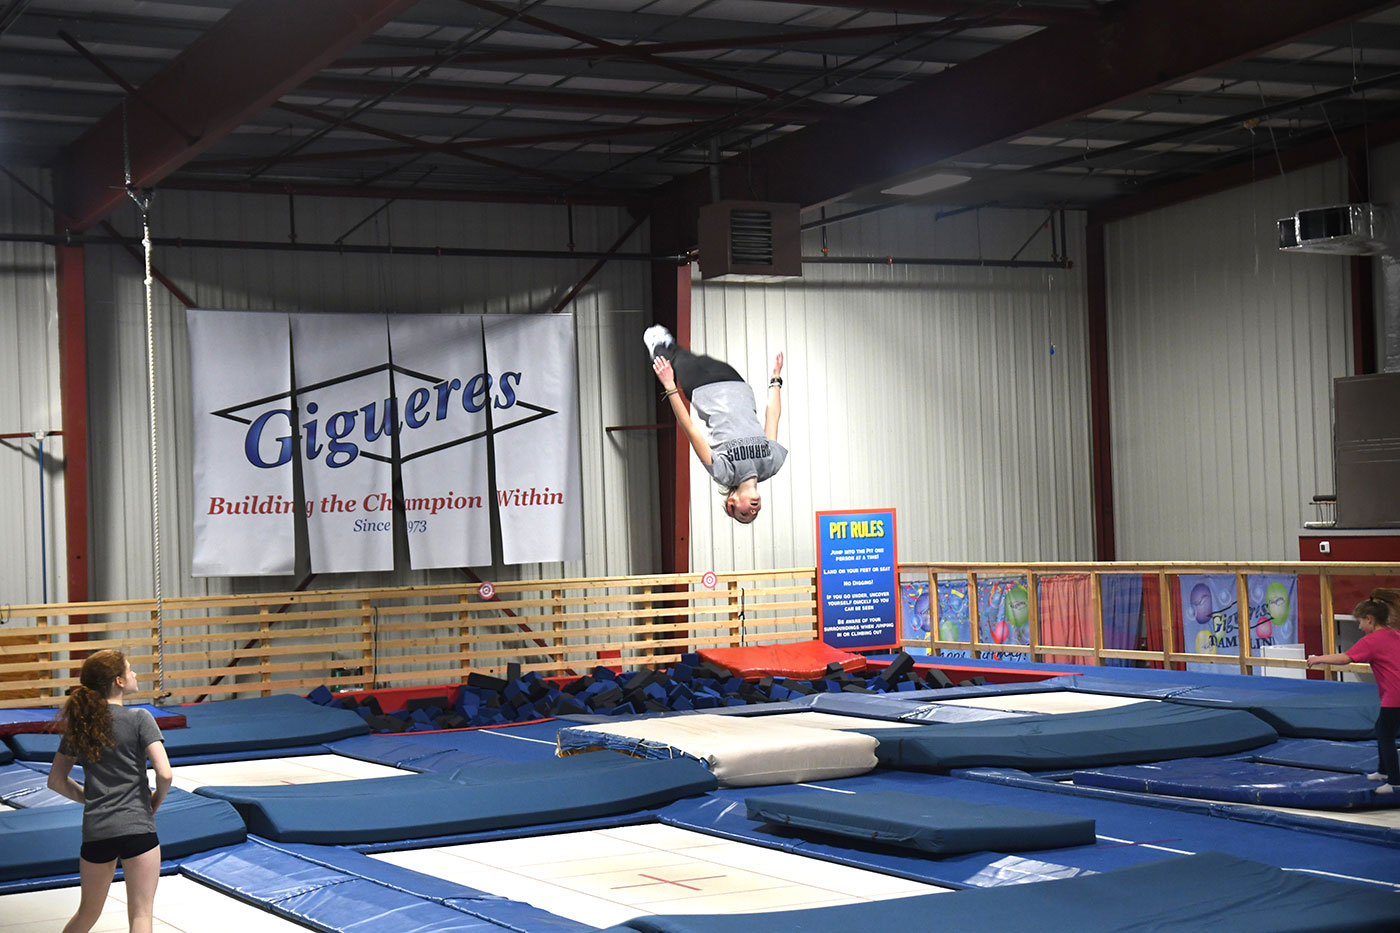 Gymnast photographed mid-air during an acromatic maneuver.